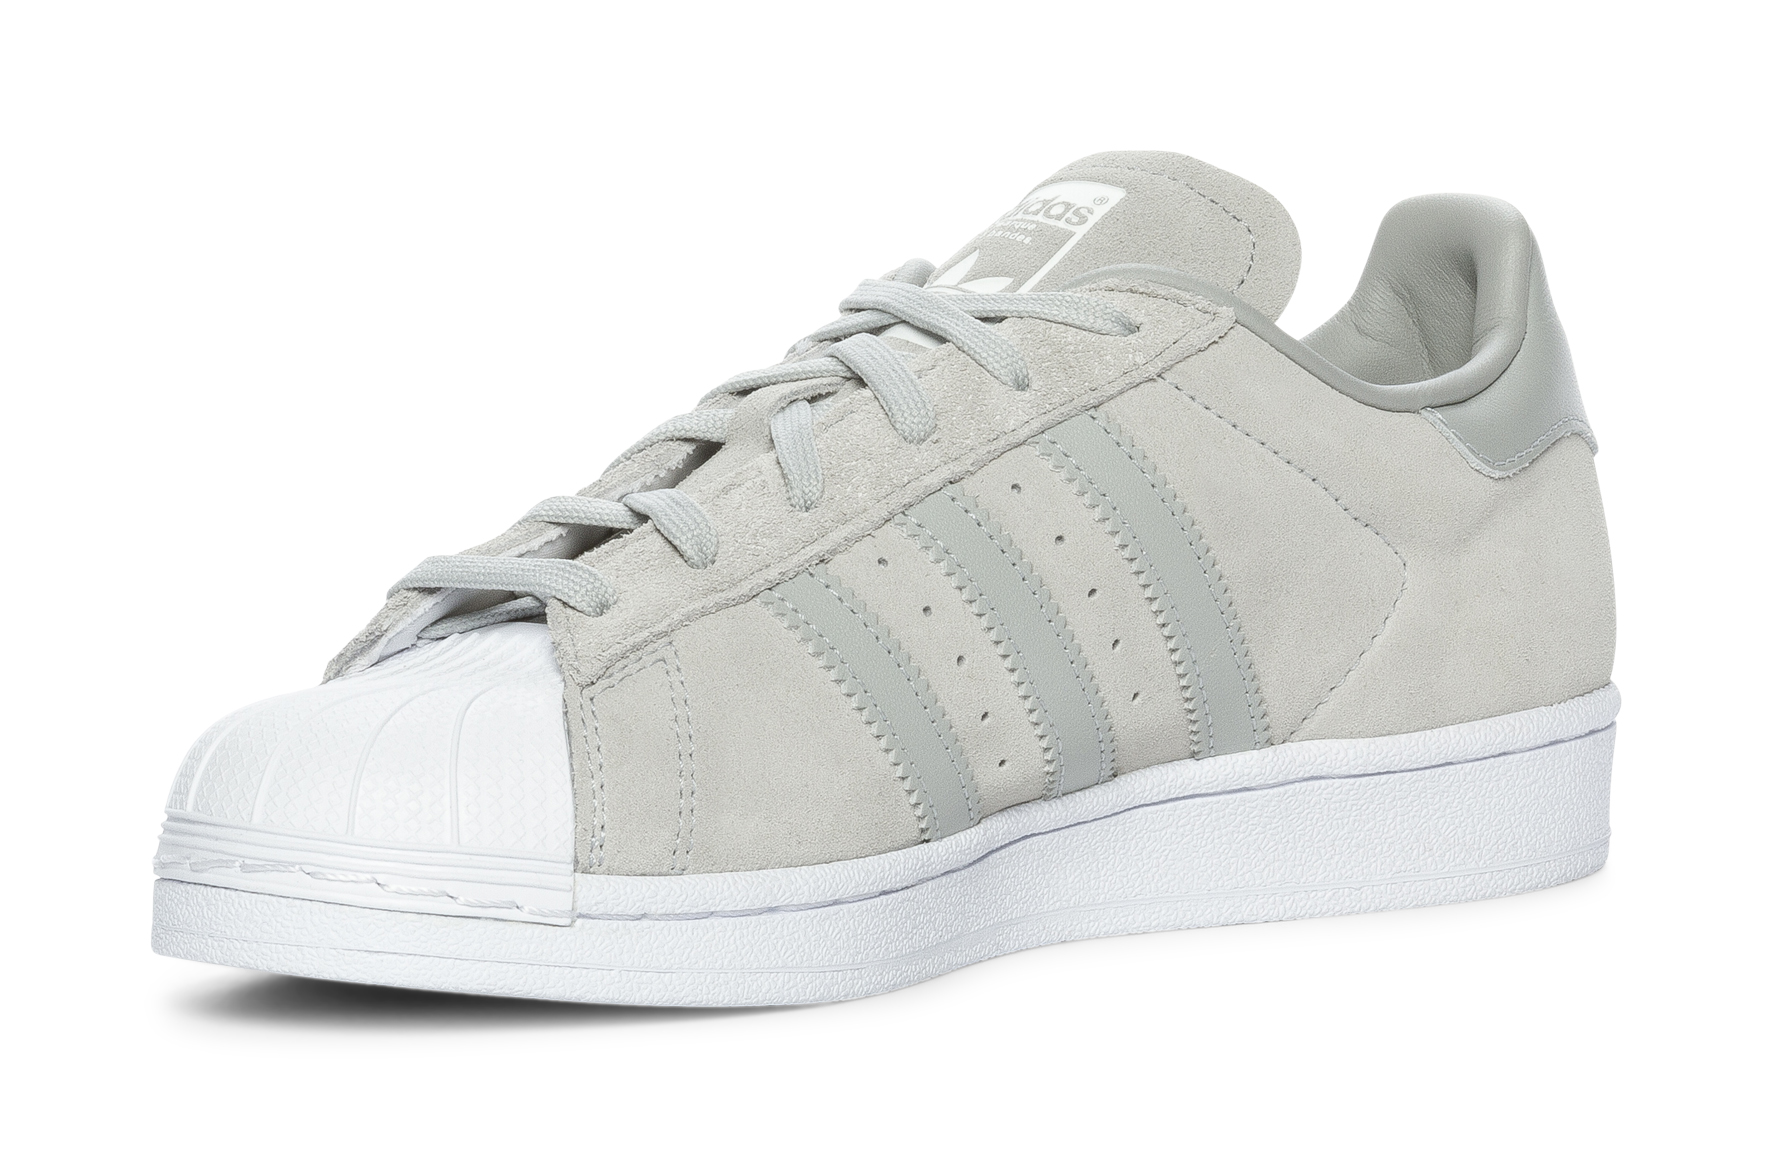 sports shoes 48a5f 3b7da ADIDAS Superstar W - Harmaa 304394 feetfirst.fi